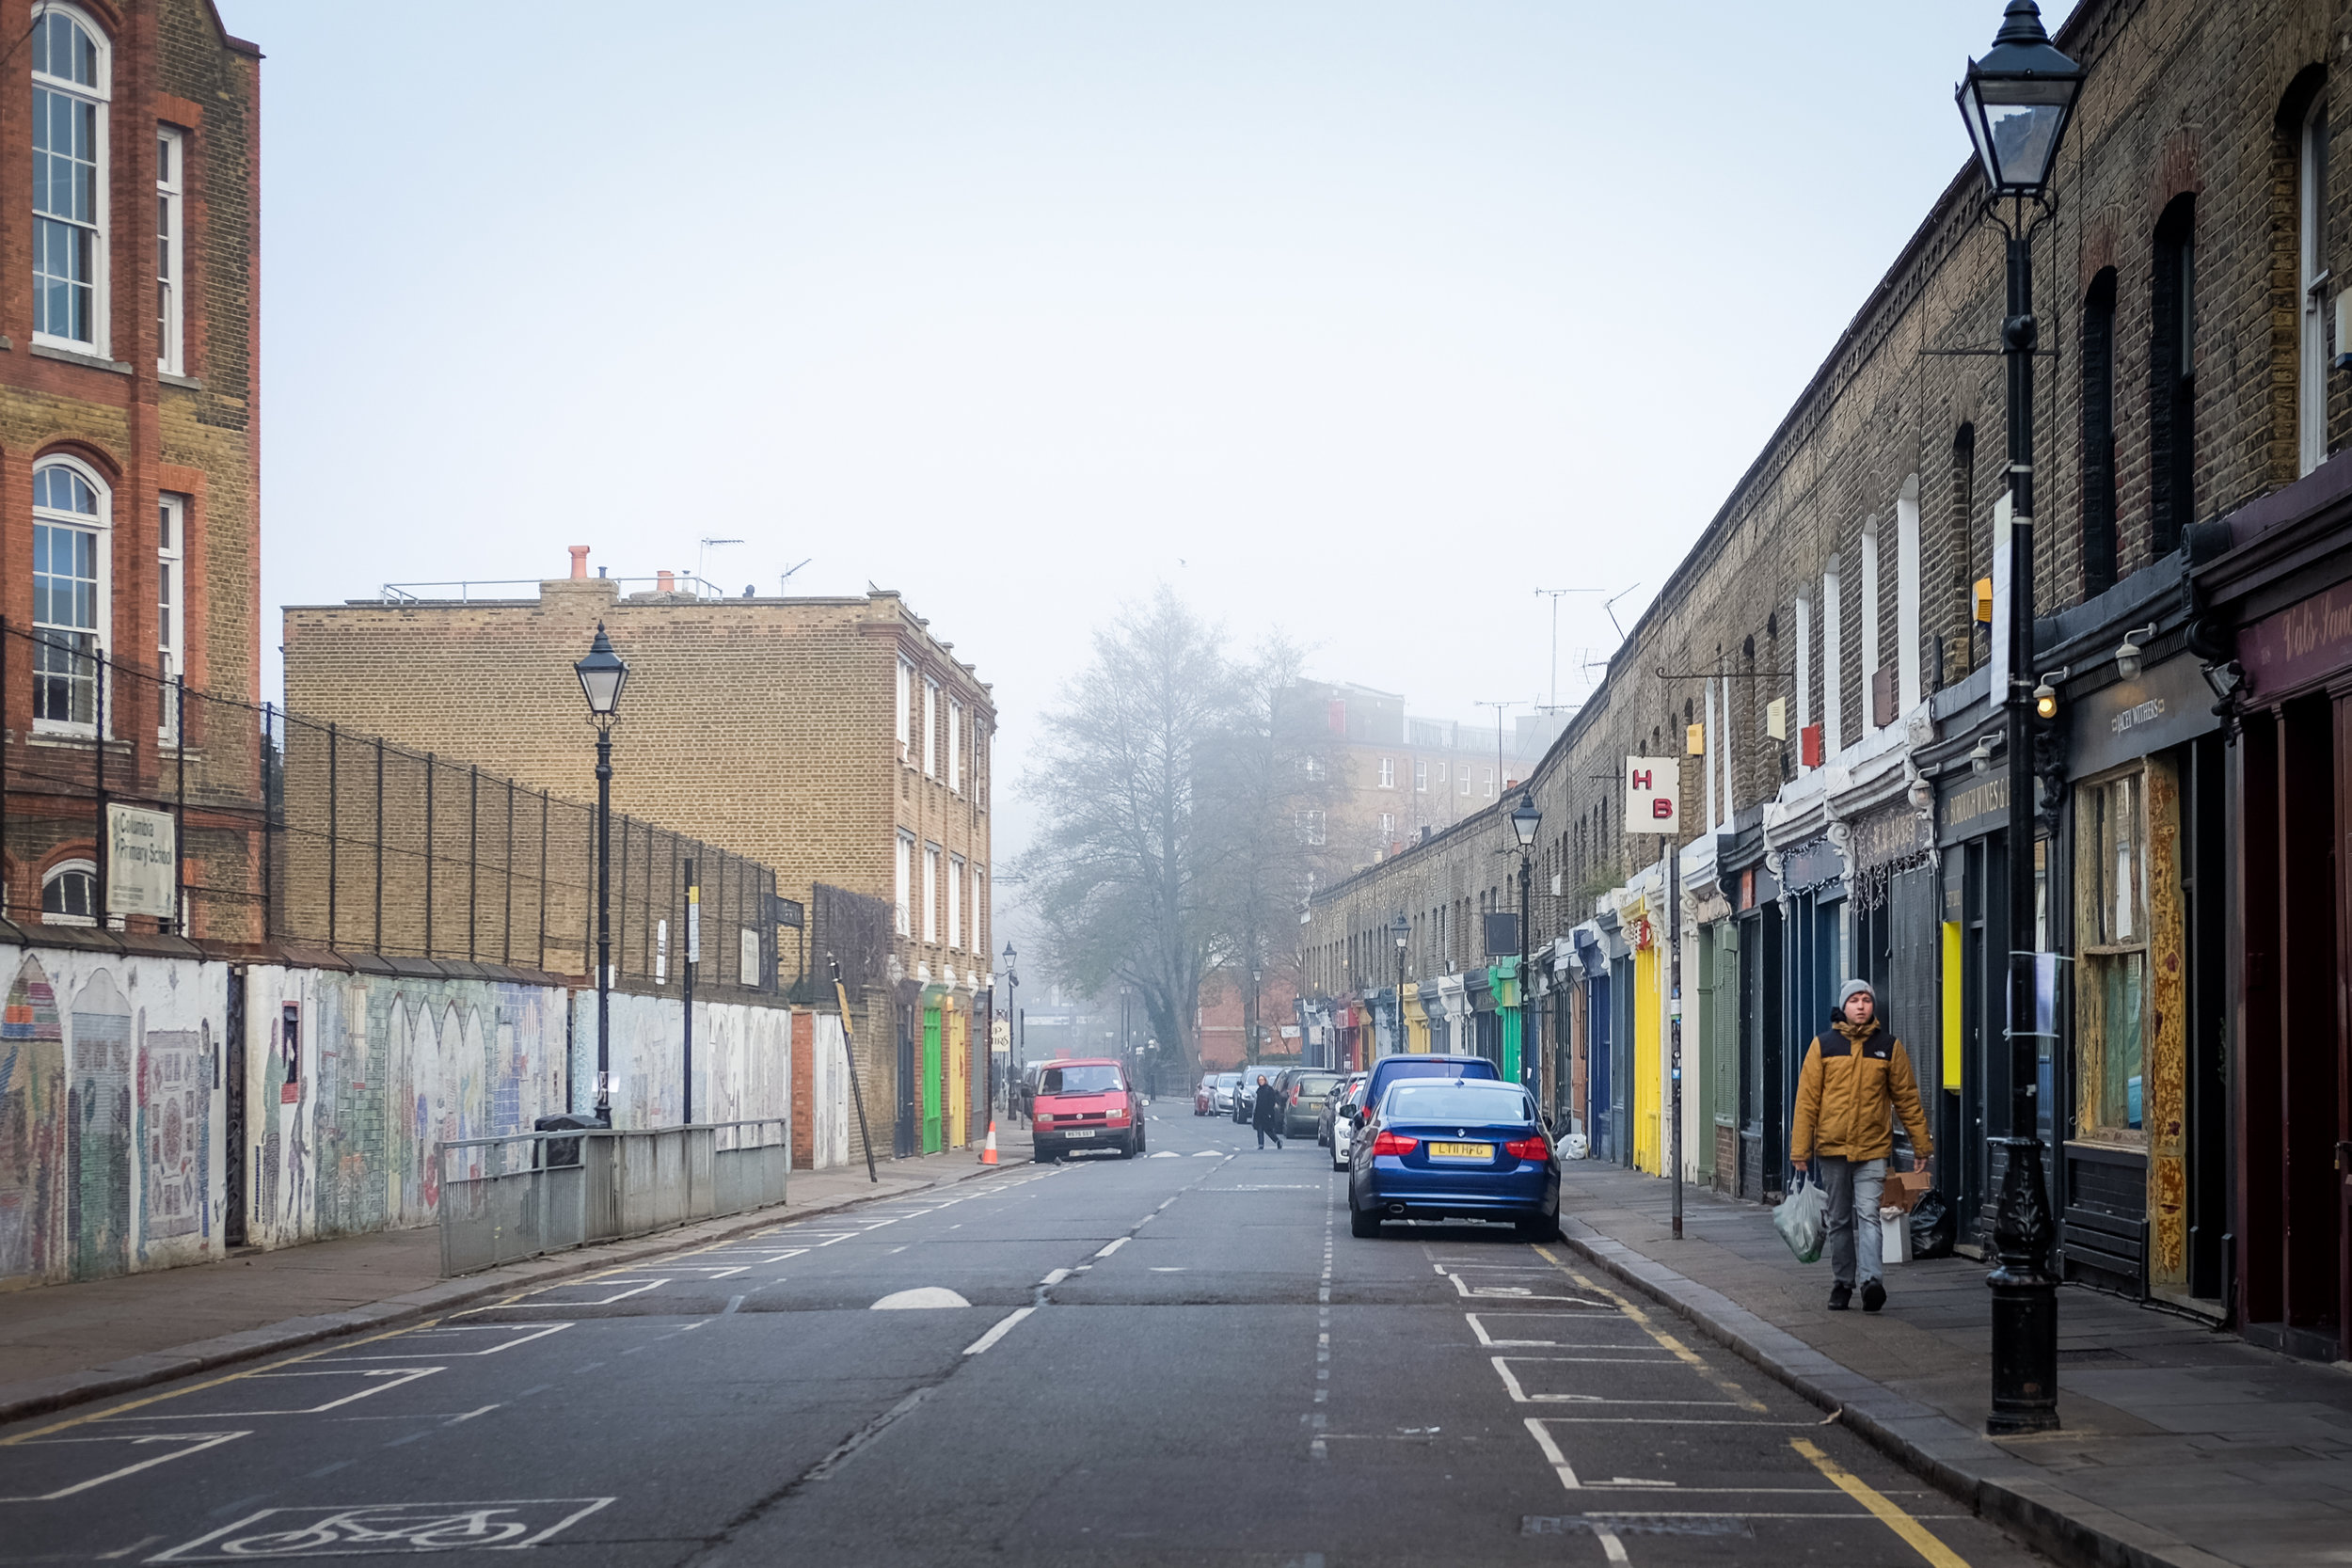 Columbia Road without the market